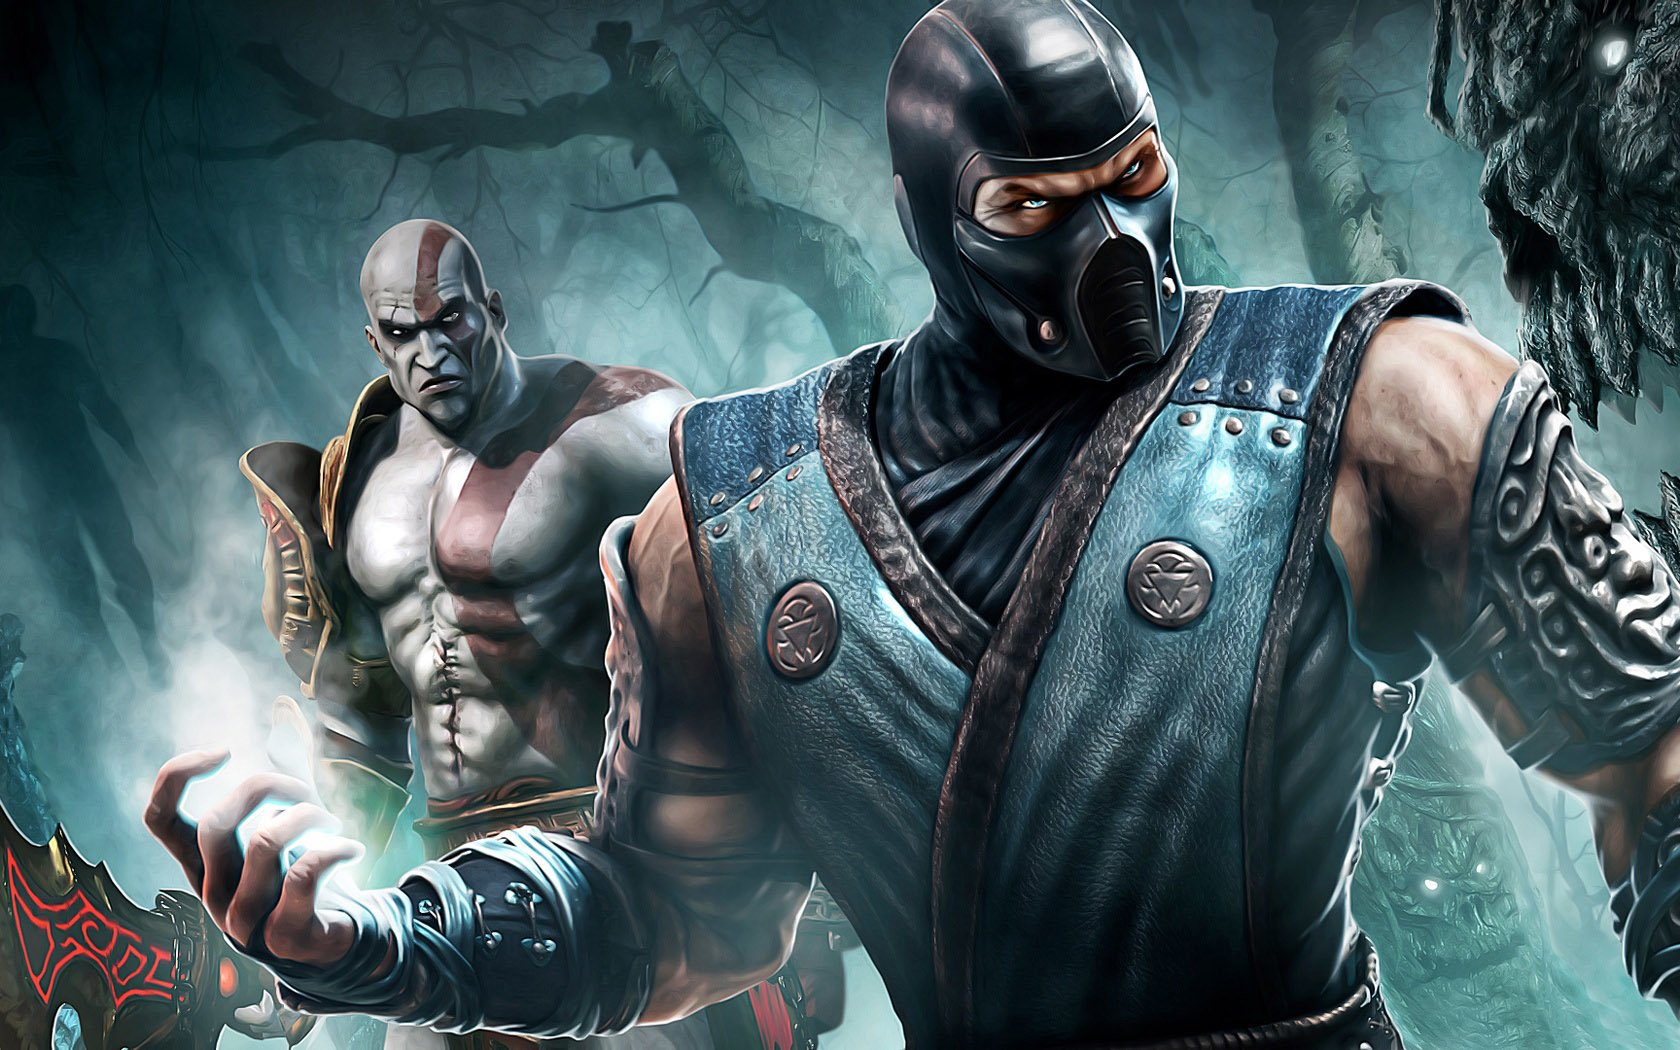 222 Mortal Kombat Hd Wallpapers Background Images Wallpaper Abyss